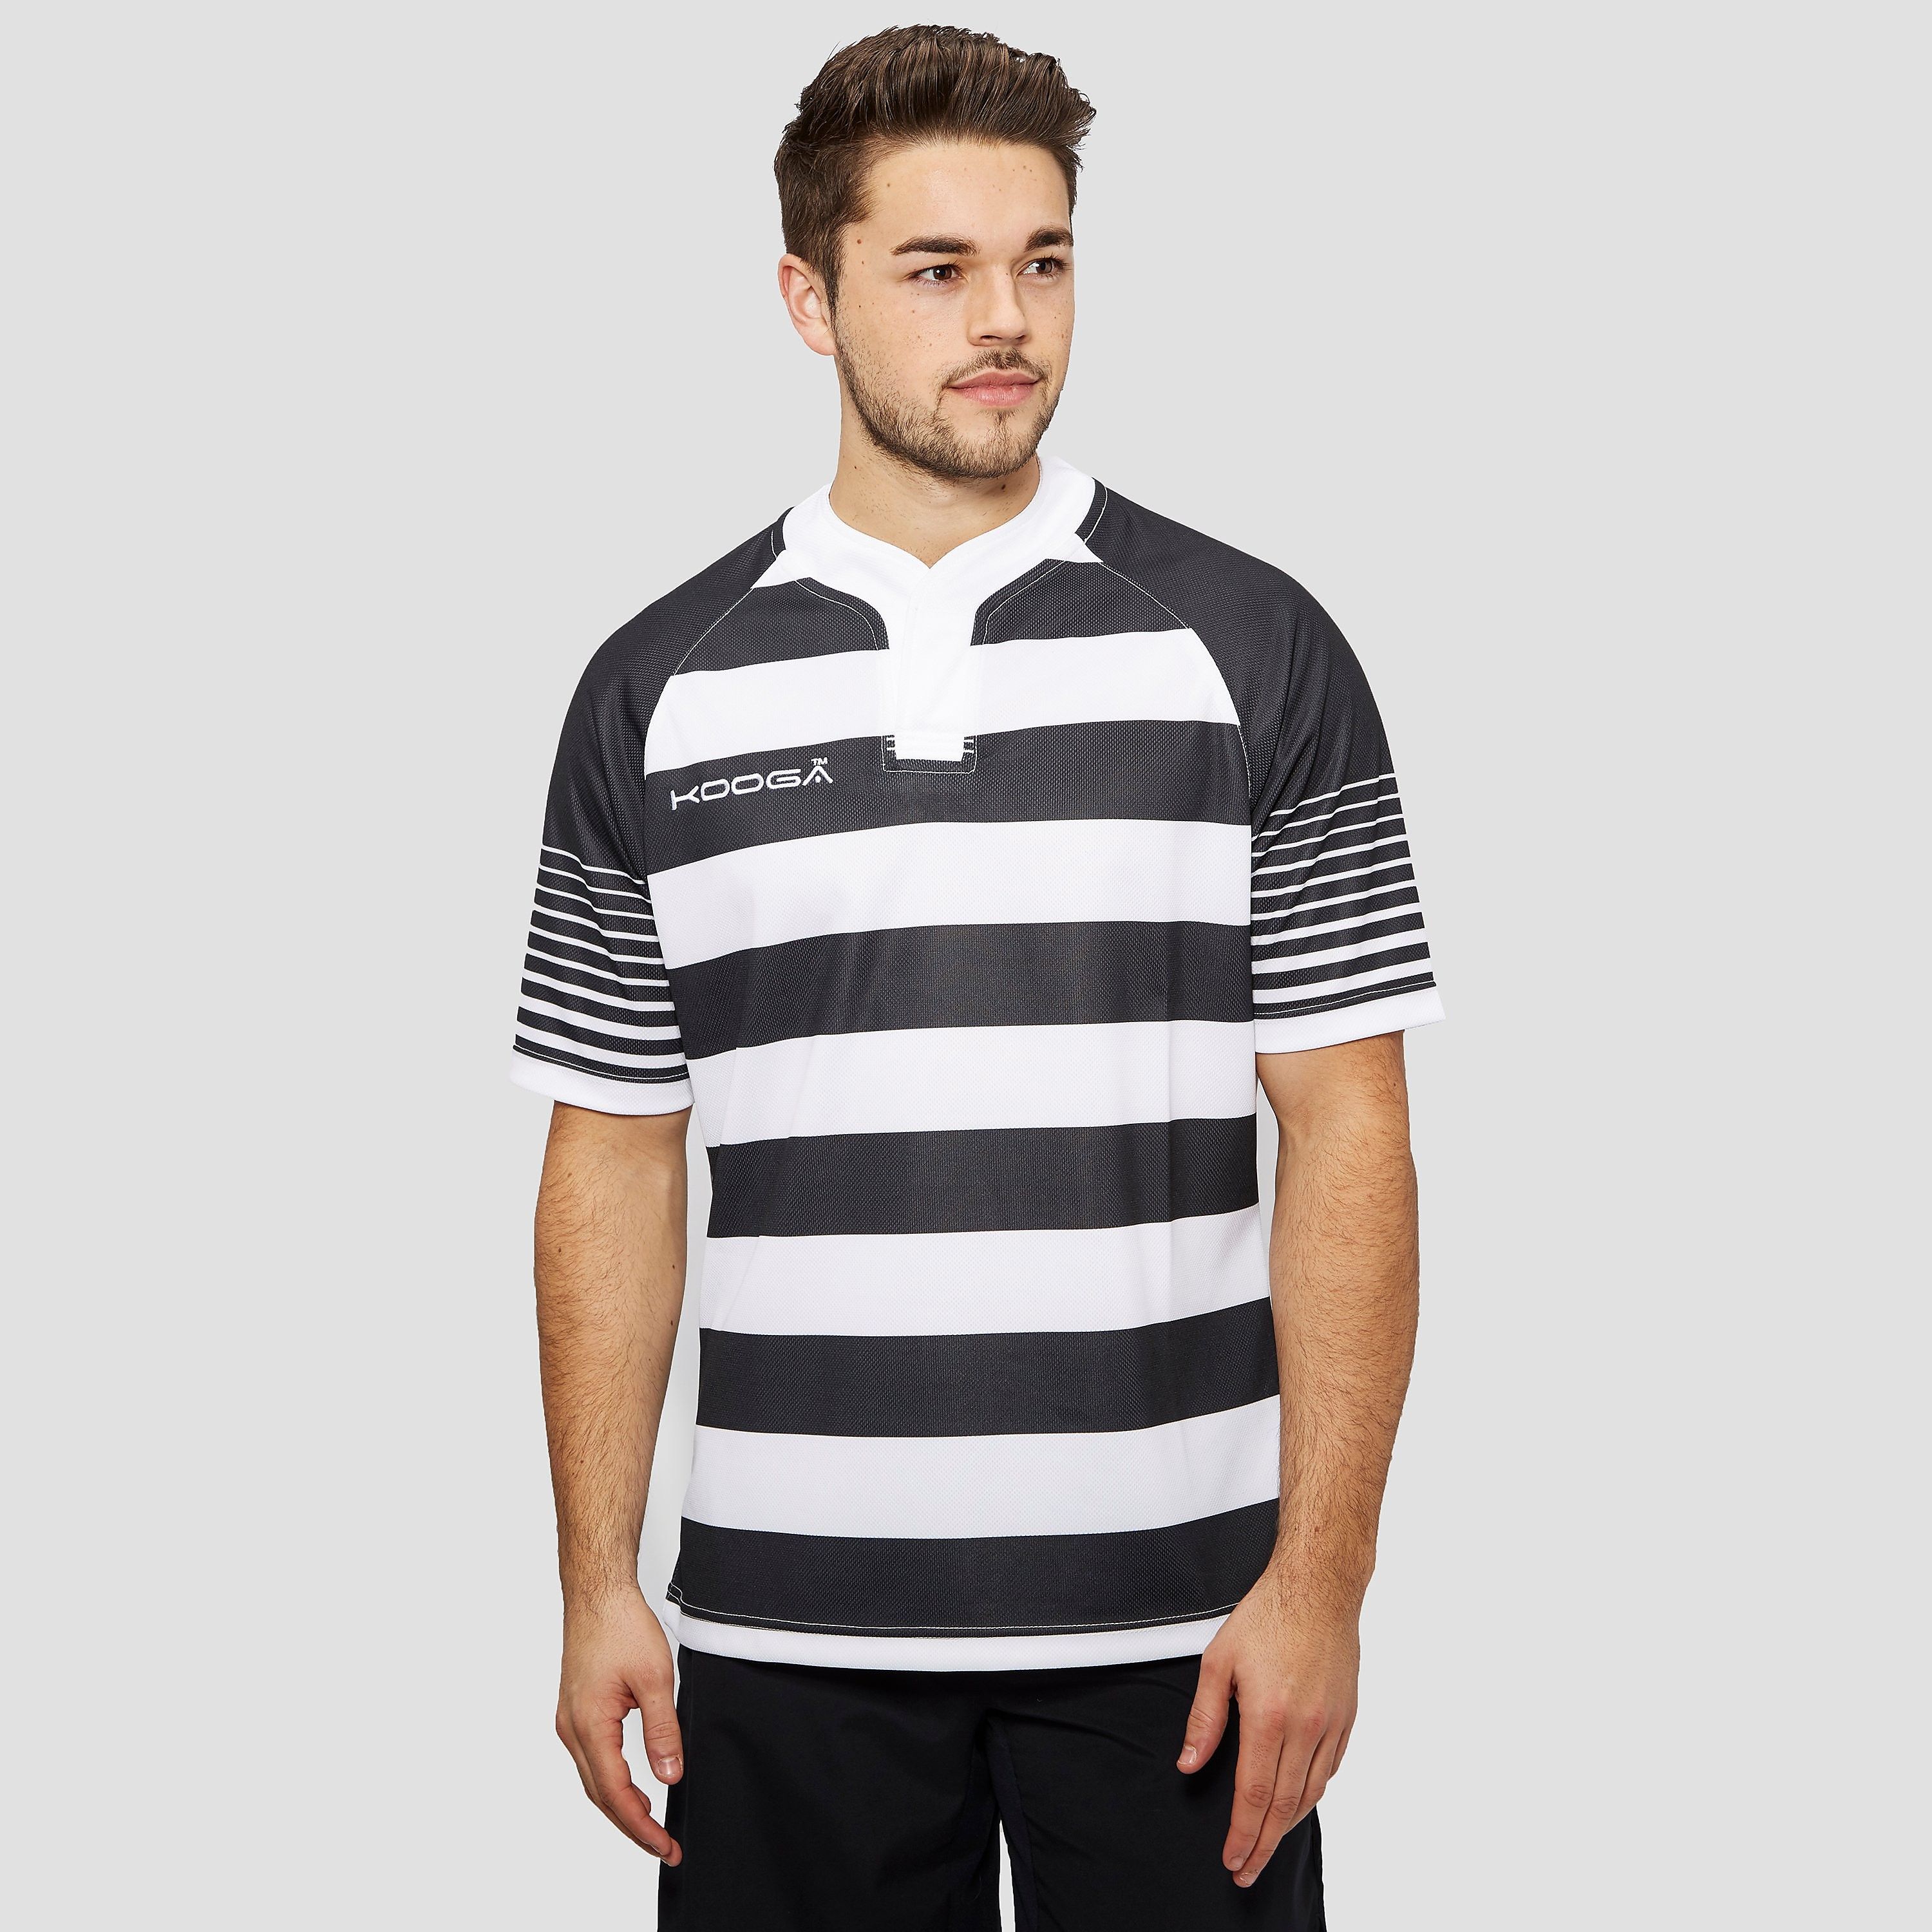 KooGa TOUCHLINE RUGBY SHIRT